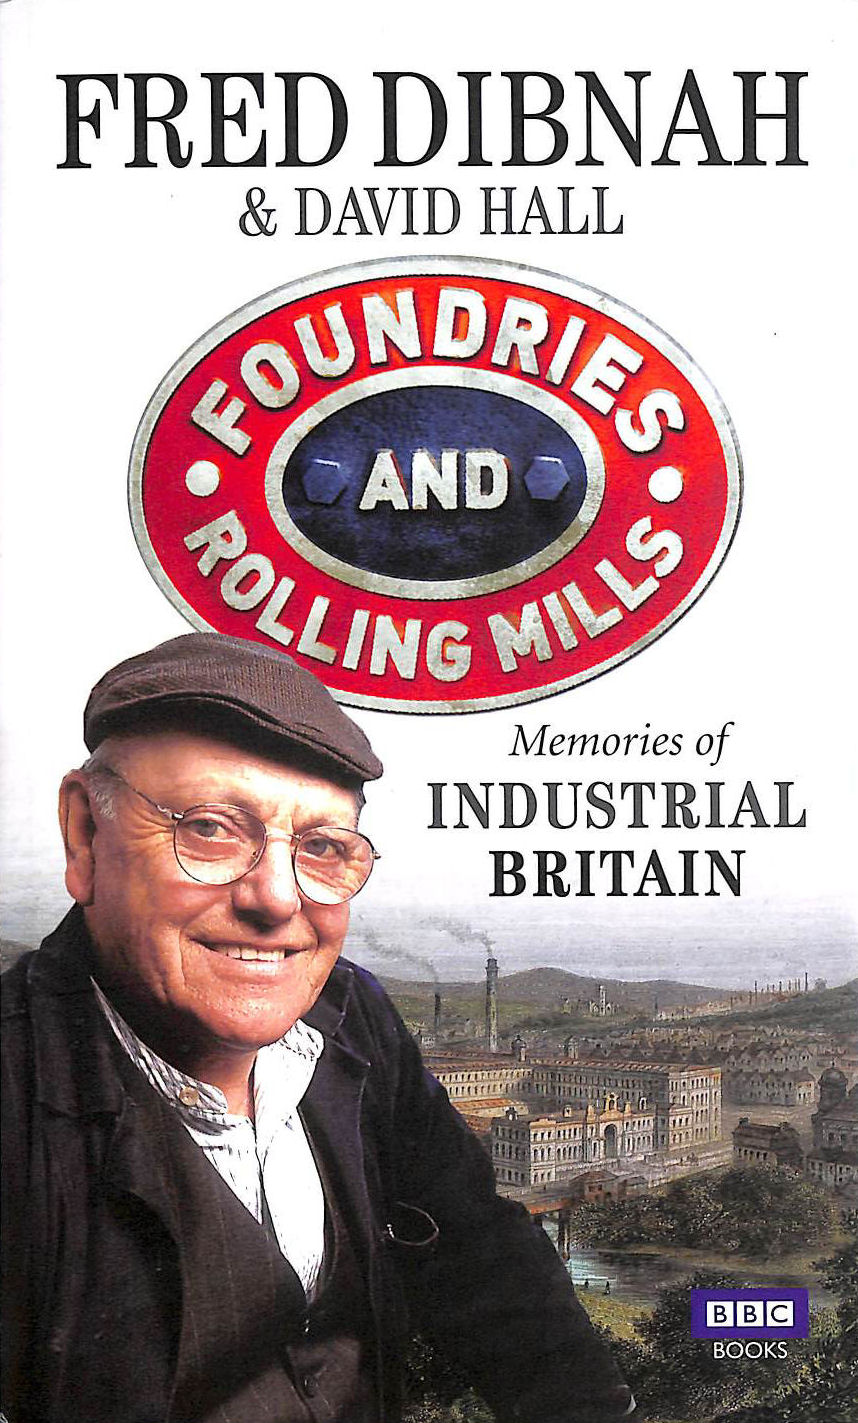 Image for Foundries And Rolling Mills, Memories of Industrial Britain.